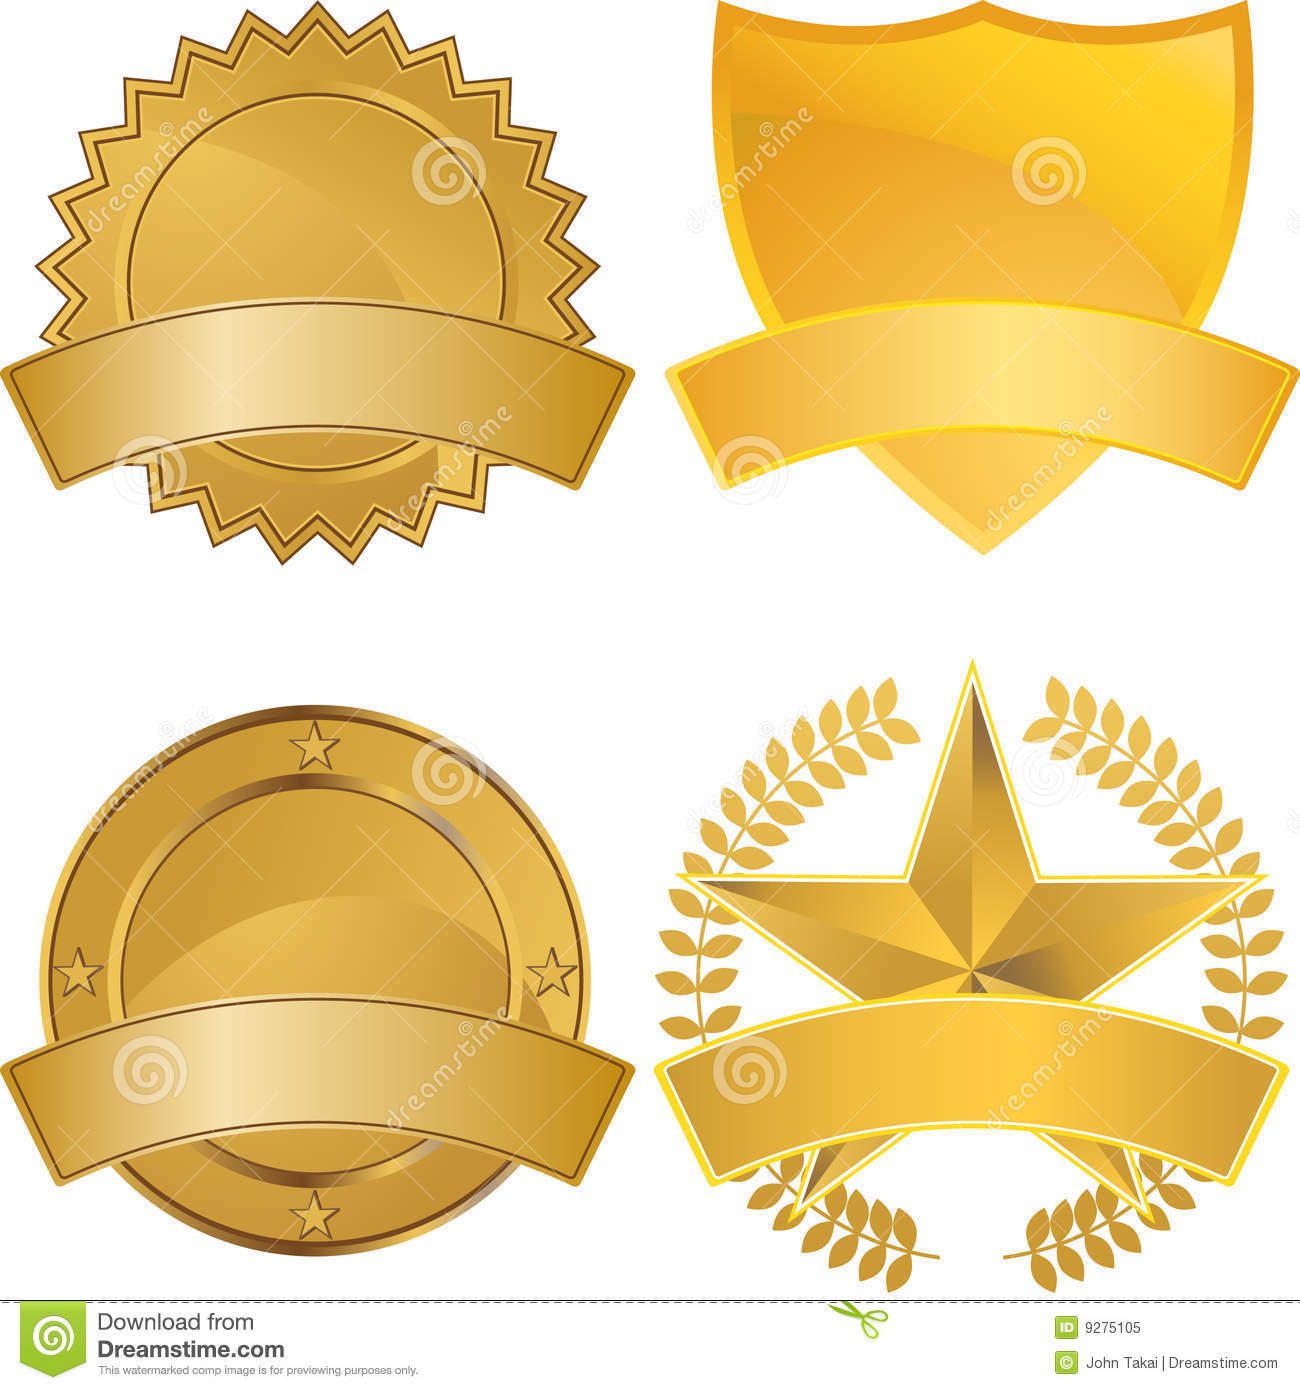 29 additionally Red Banner Transparent   Image furthermore Awesome Human Award moreover Royalty Free Stock Photography Golden Seal St er Gold Ribbon Isolated White Background Image32841107 besides Gold banner clipart. on red award ribbon clip art